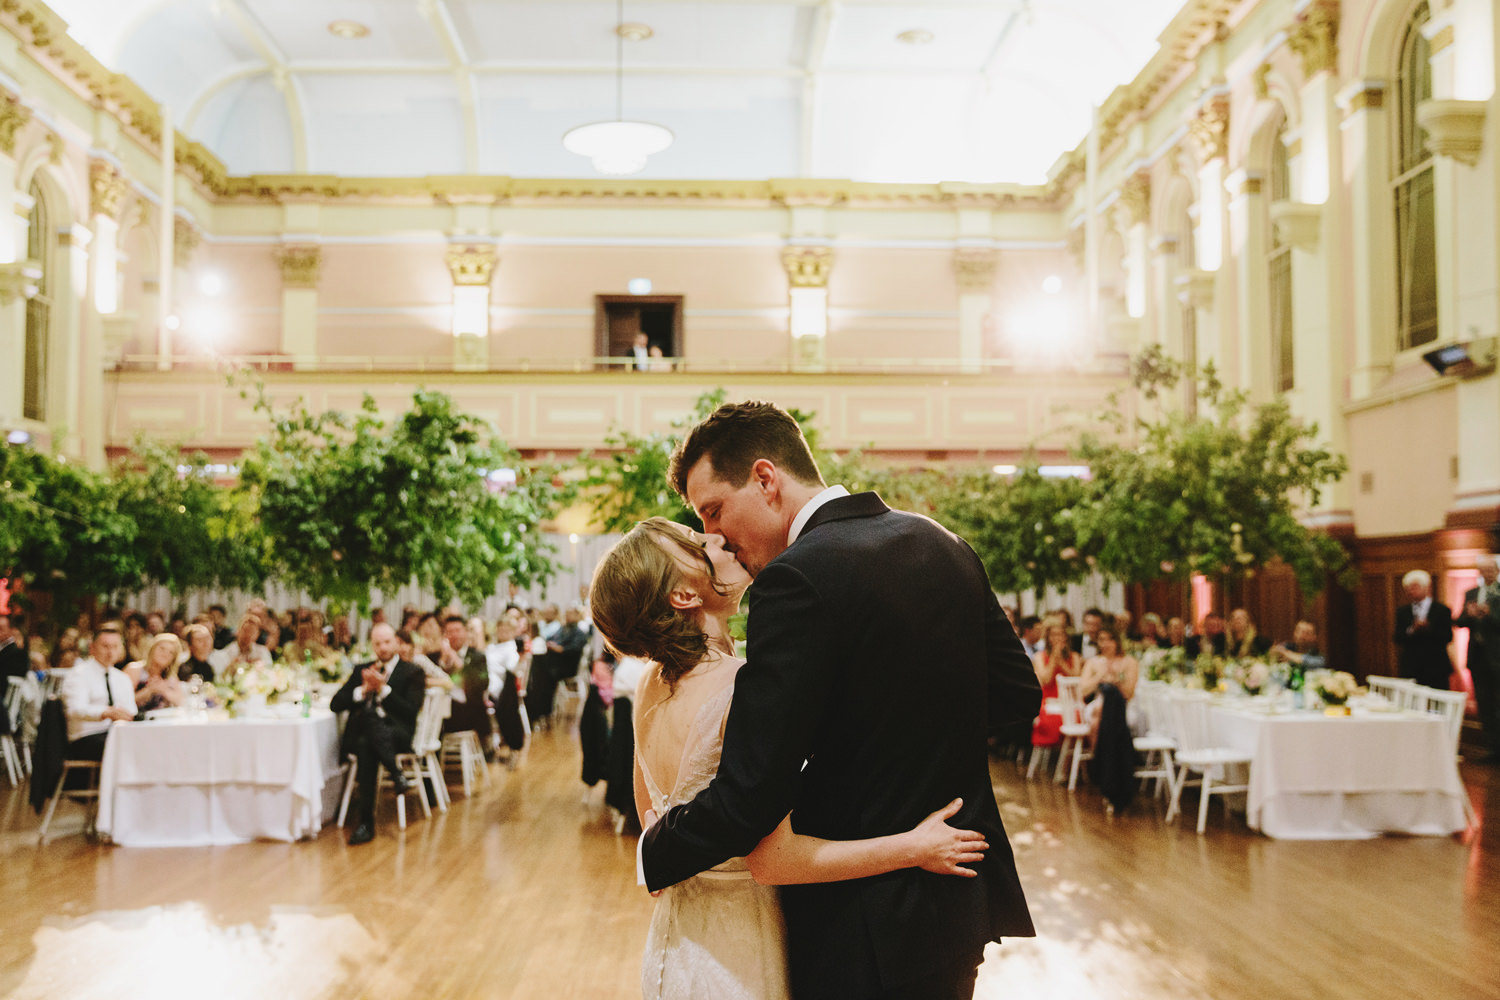 158-Melbourne_Wedding_Photographer_Jonathan_Ong_Best2015.jpg